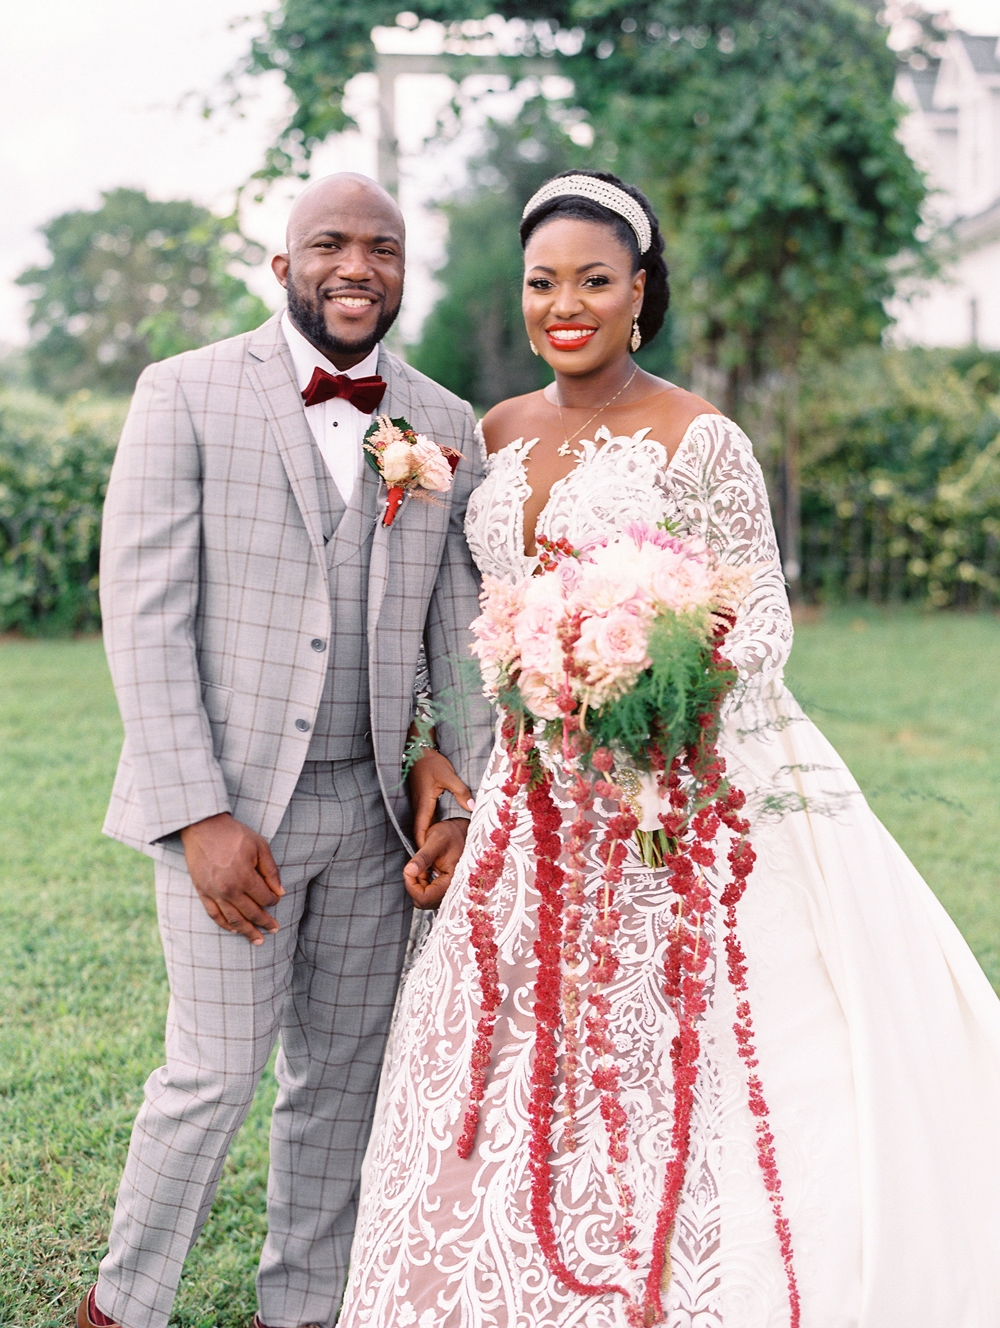 A Nigerian-Inspired Wedding at an Estate in Reva, Virginia